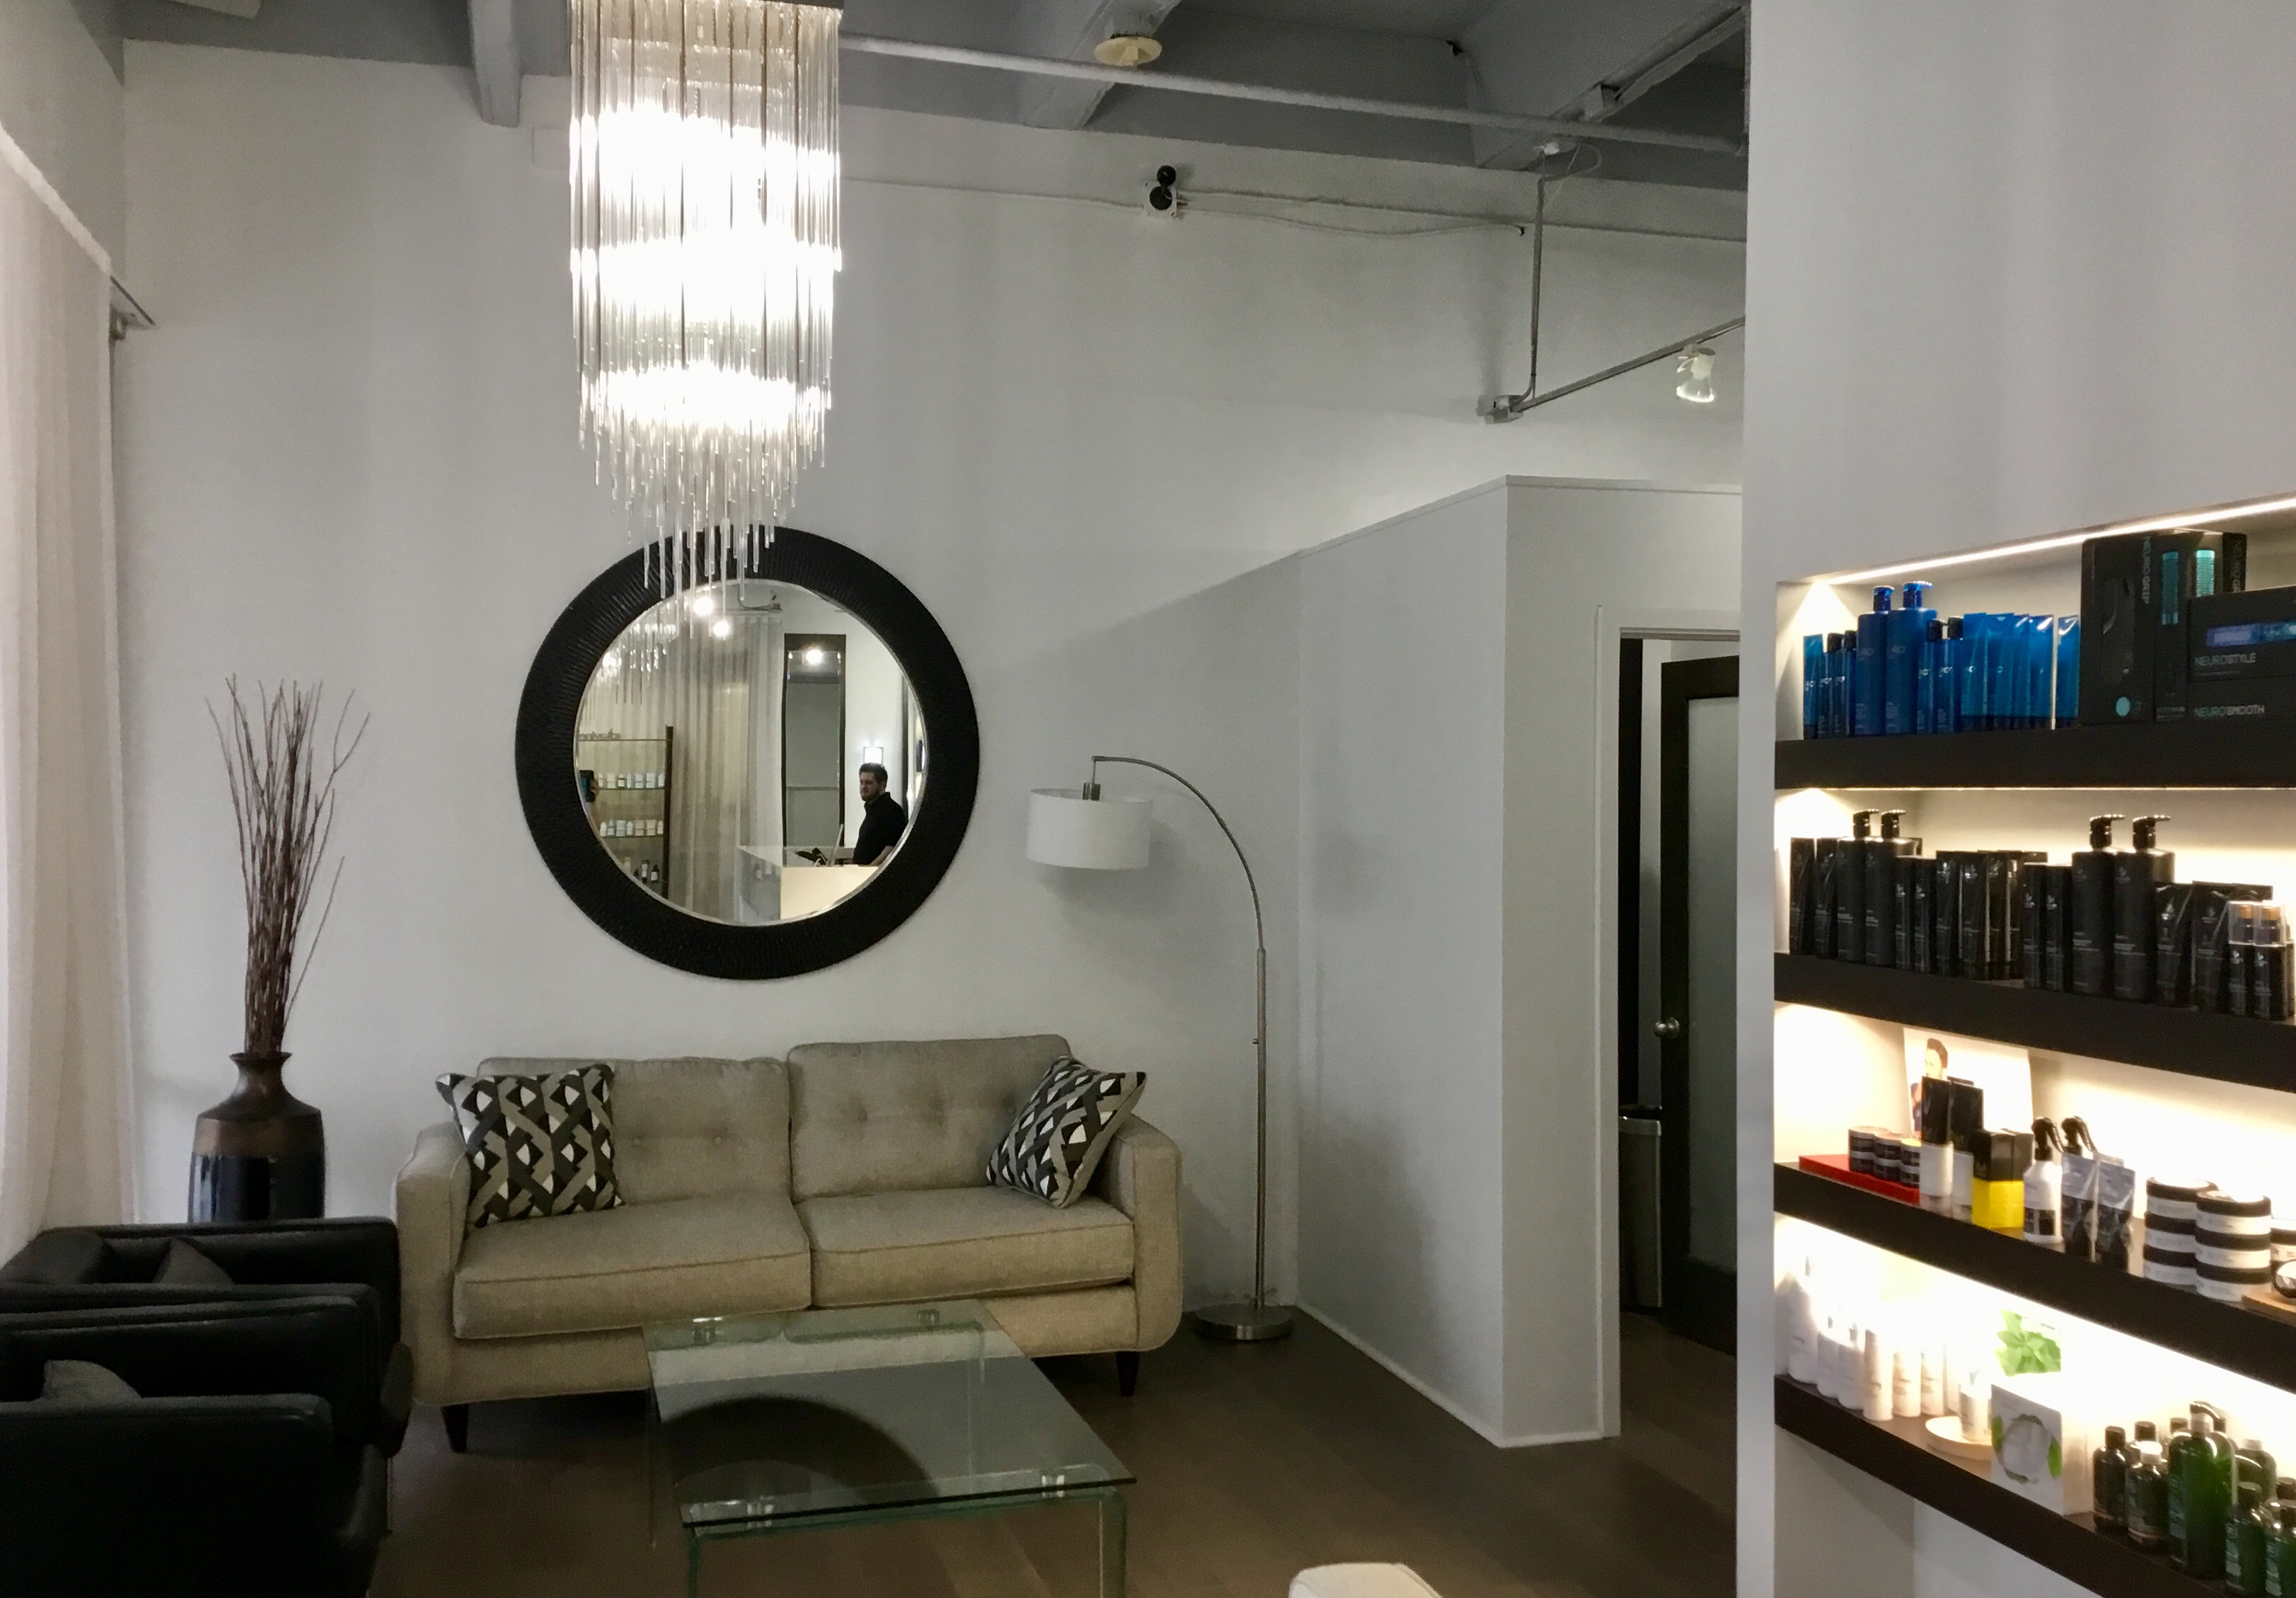 Salon Turnage marks debut salon for Conor Turnage of Paul